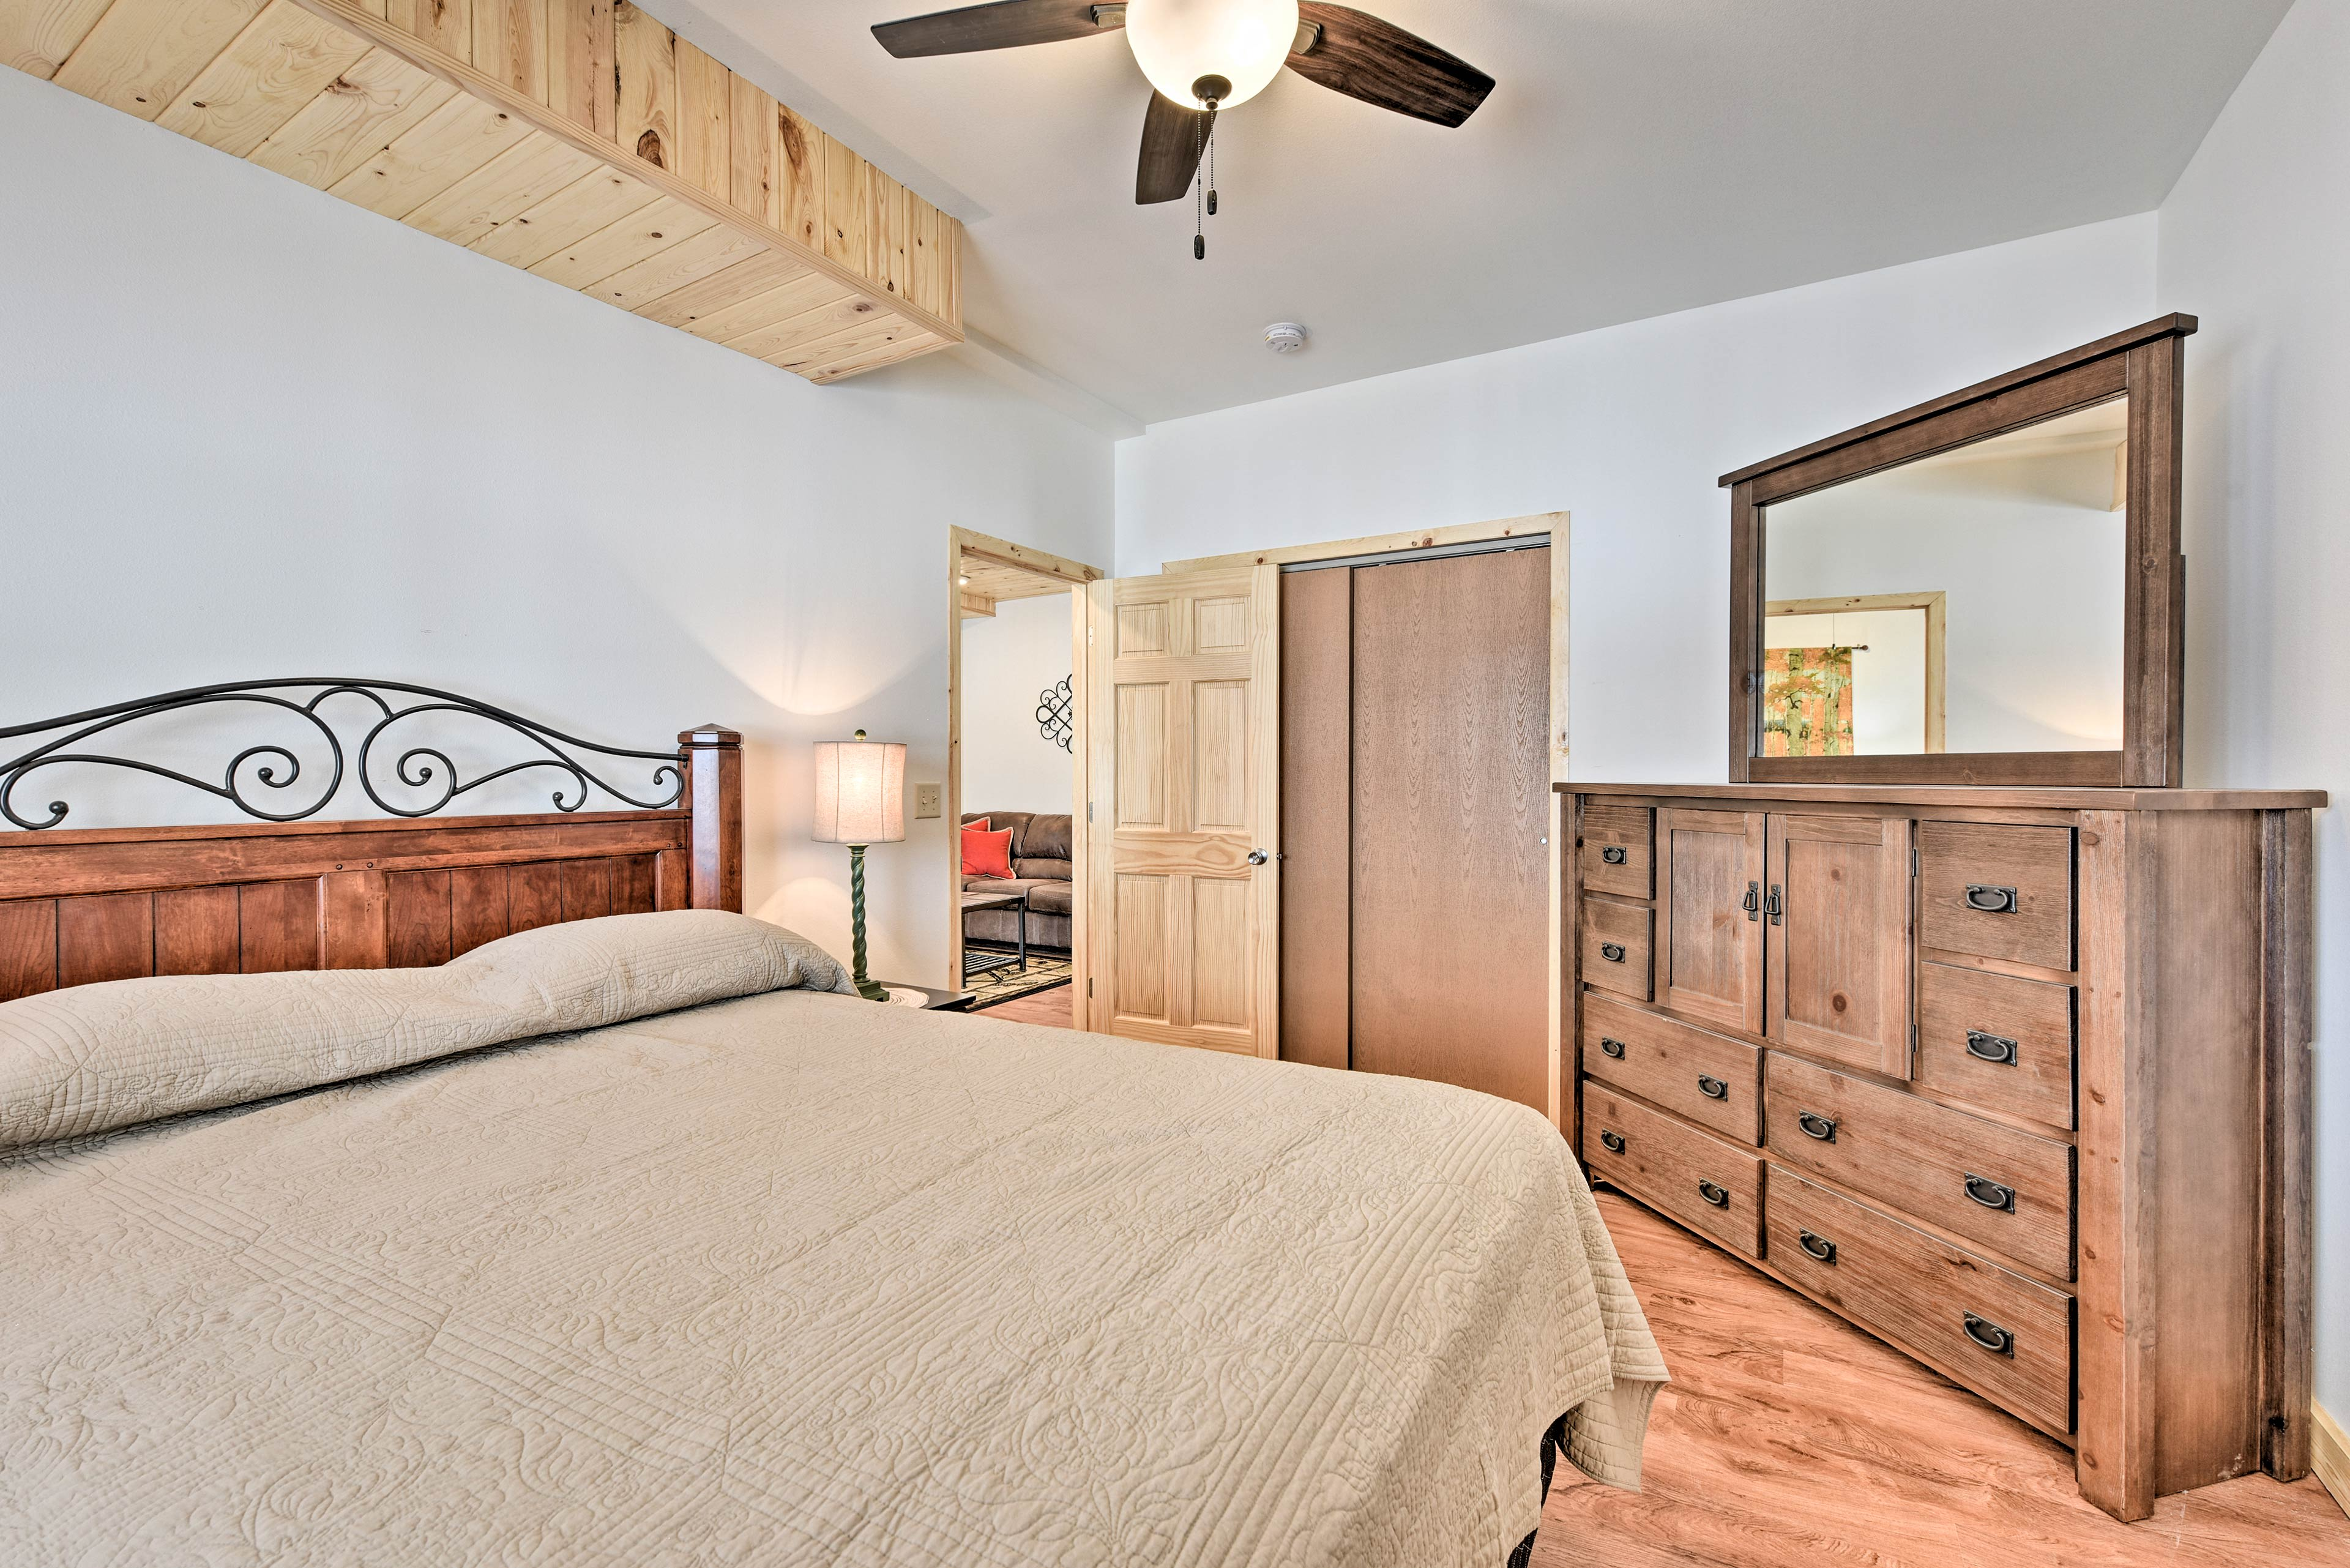 The final bedroom offers a queen bed.